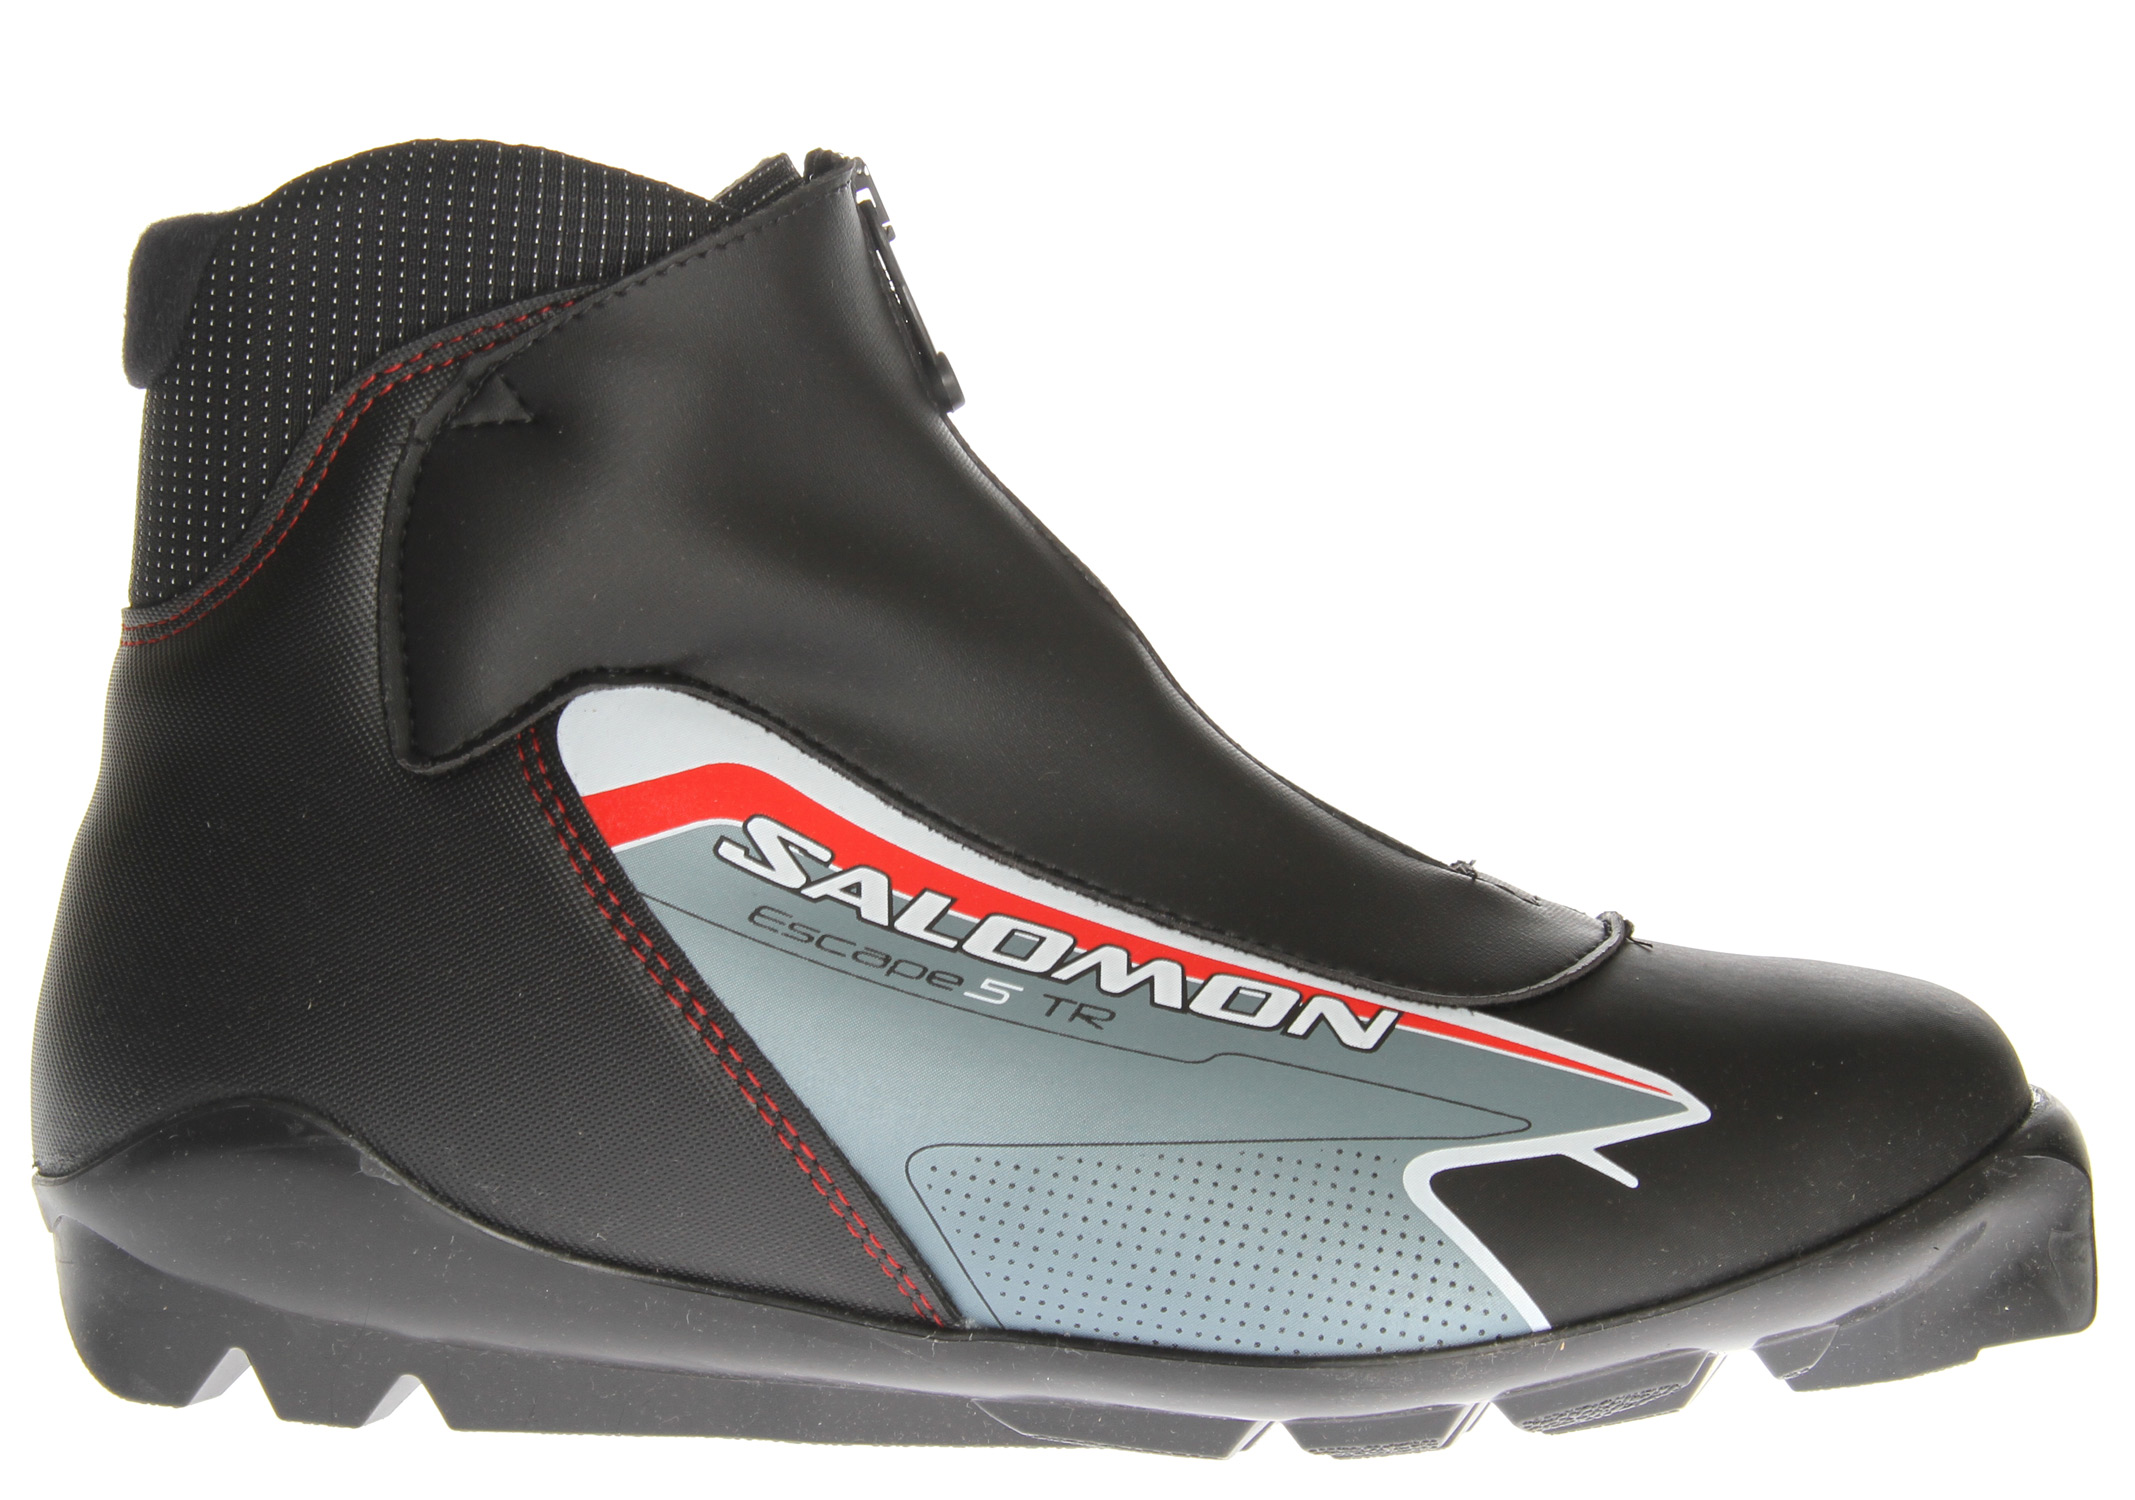 Ski Stress free touring at a good value: Salomon comfortable touring fit, and protection against snow entry.Key Features of the Salomon Escape 5 Tr Ski Boots: Heel support: Internal thermo formed heel counter Last: Salomon Touring fit Protection: Lace cover with central zip - $74.95